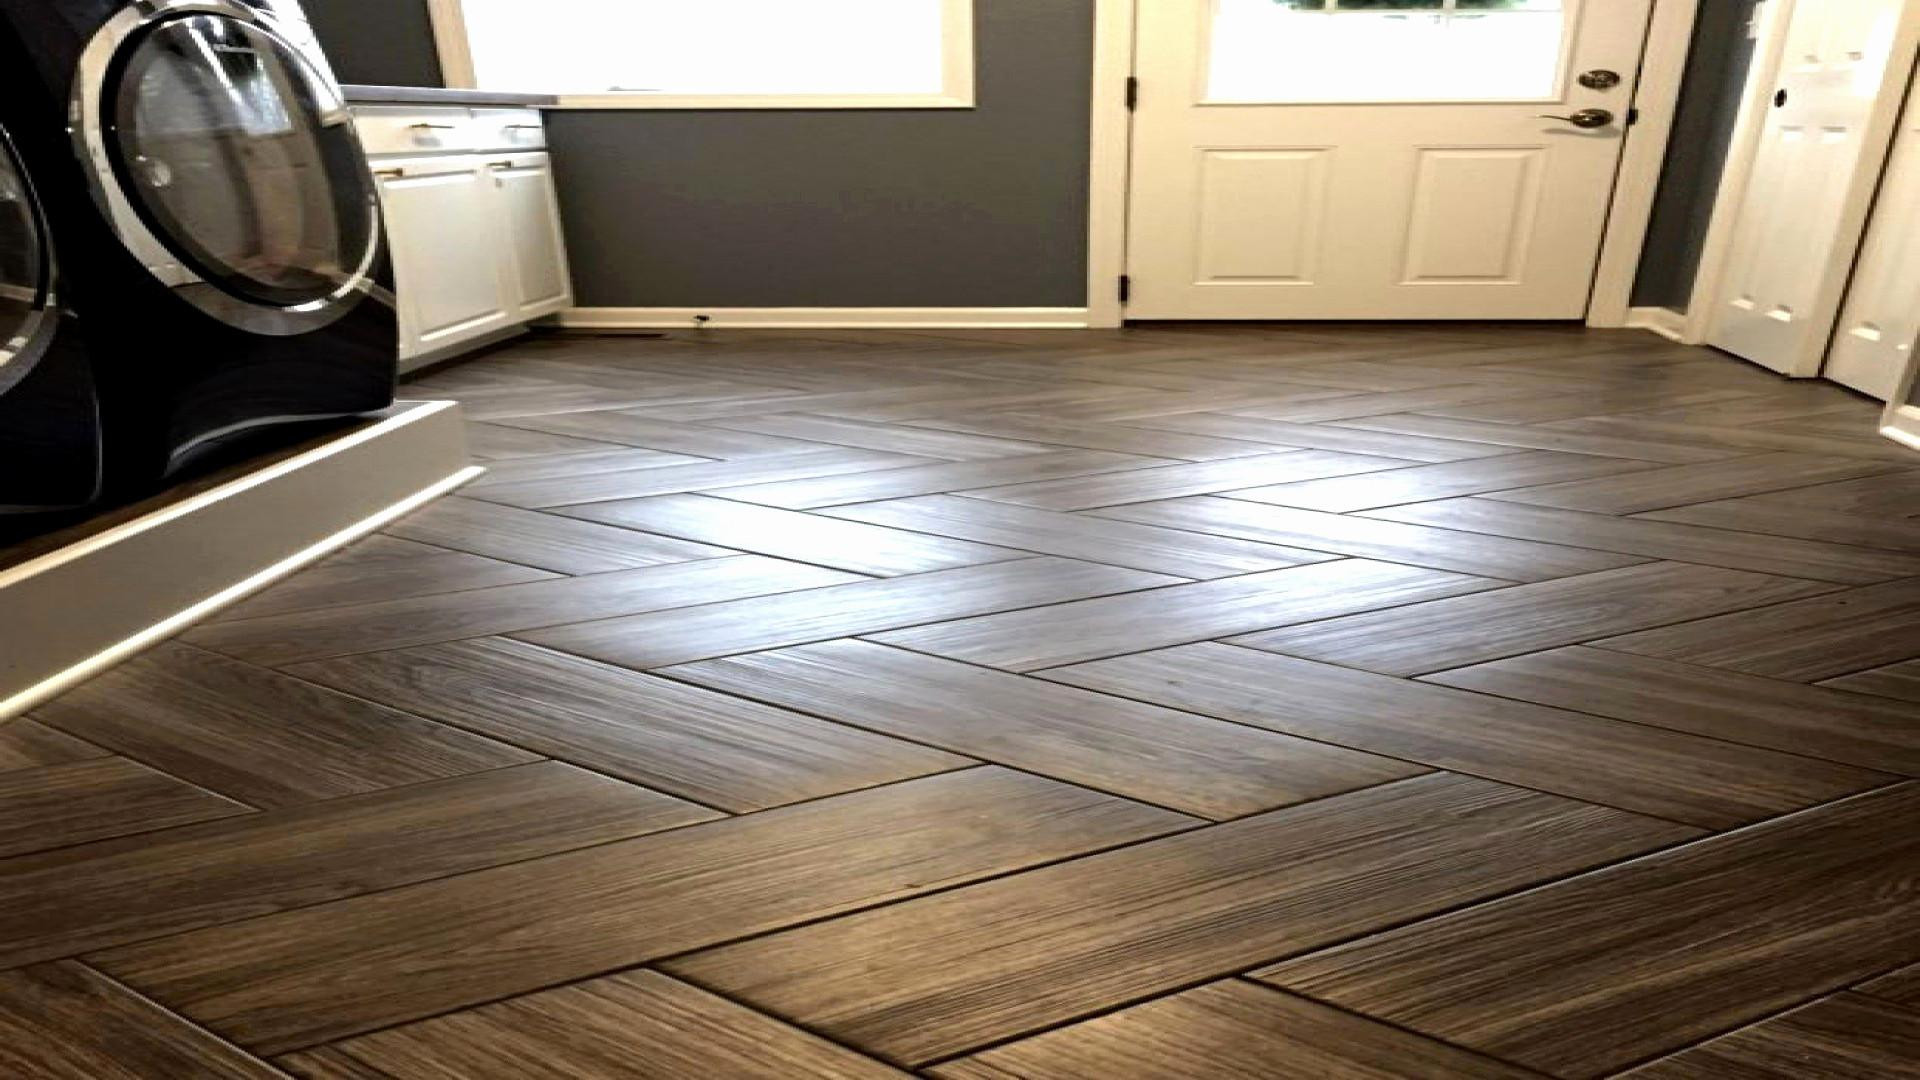 hardwood floors and more of unique of diy wood flooring images artsvisuelscaribeens com with diy wood flooring ideas